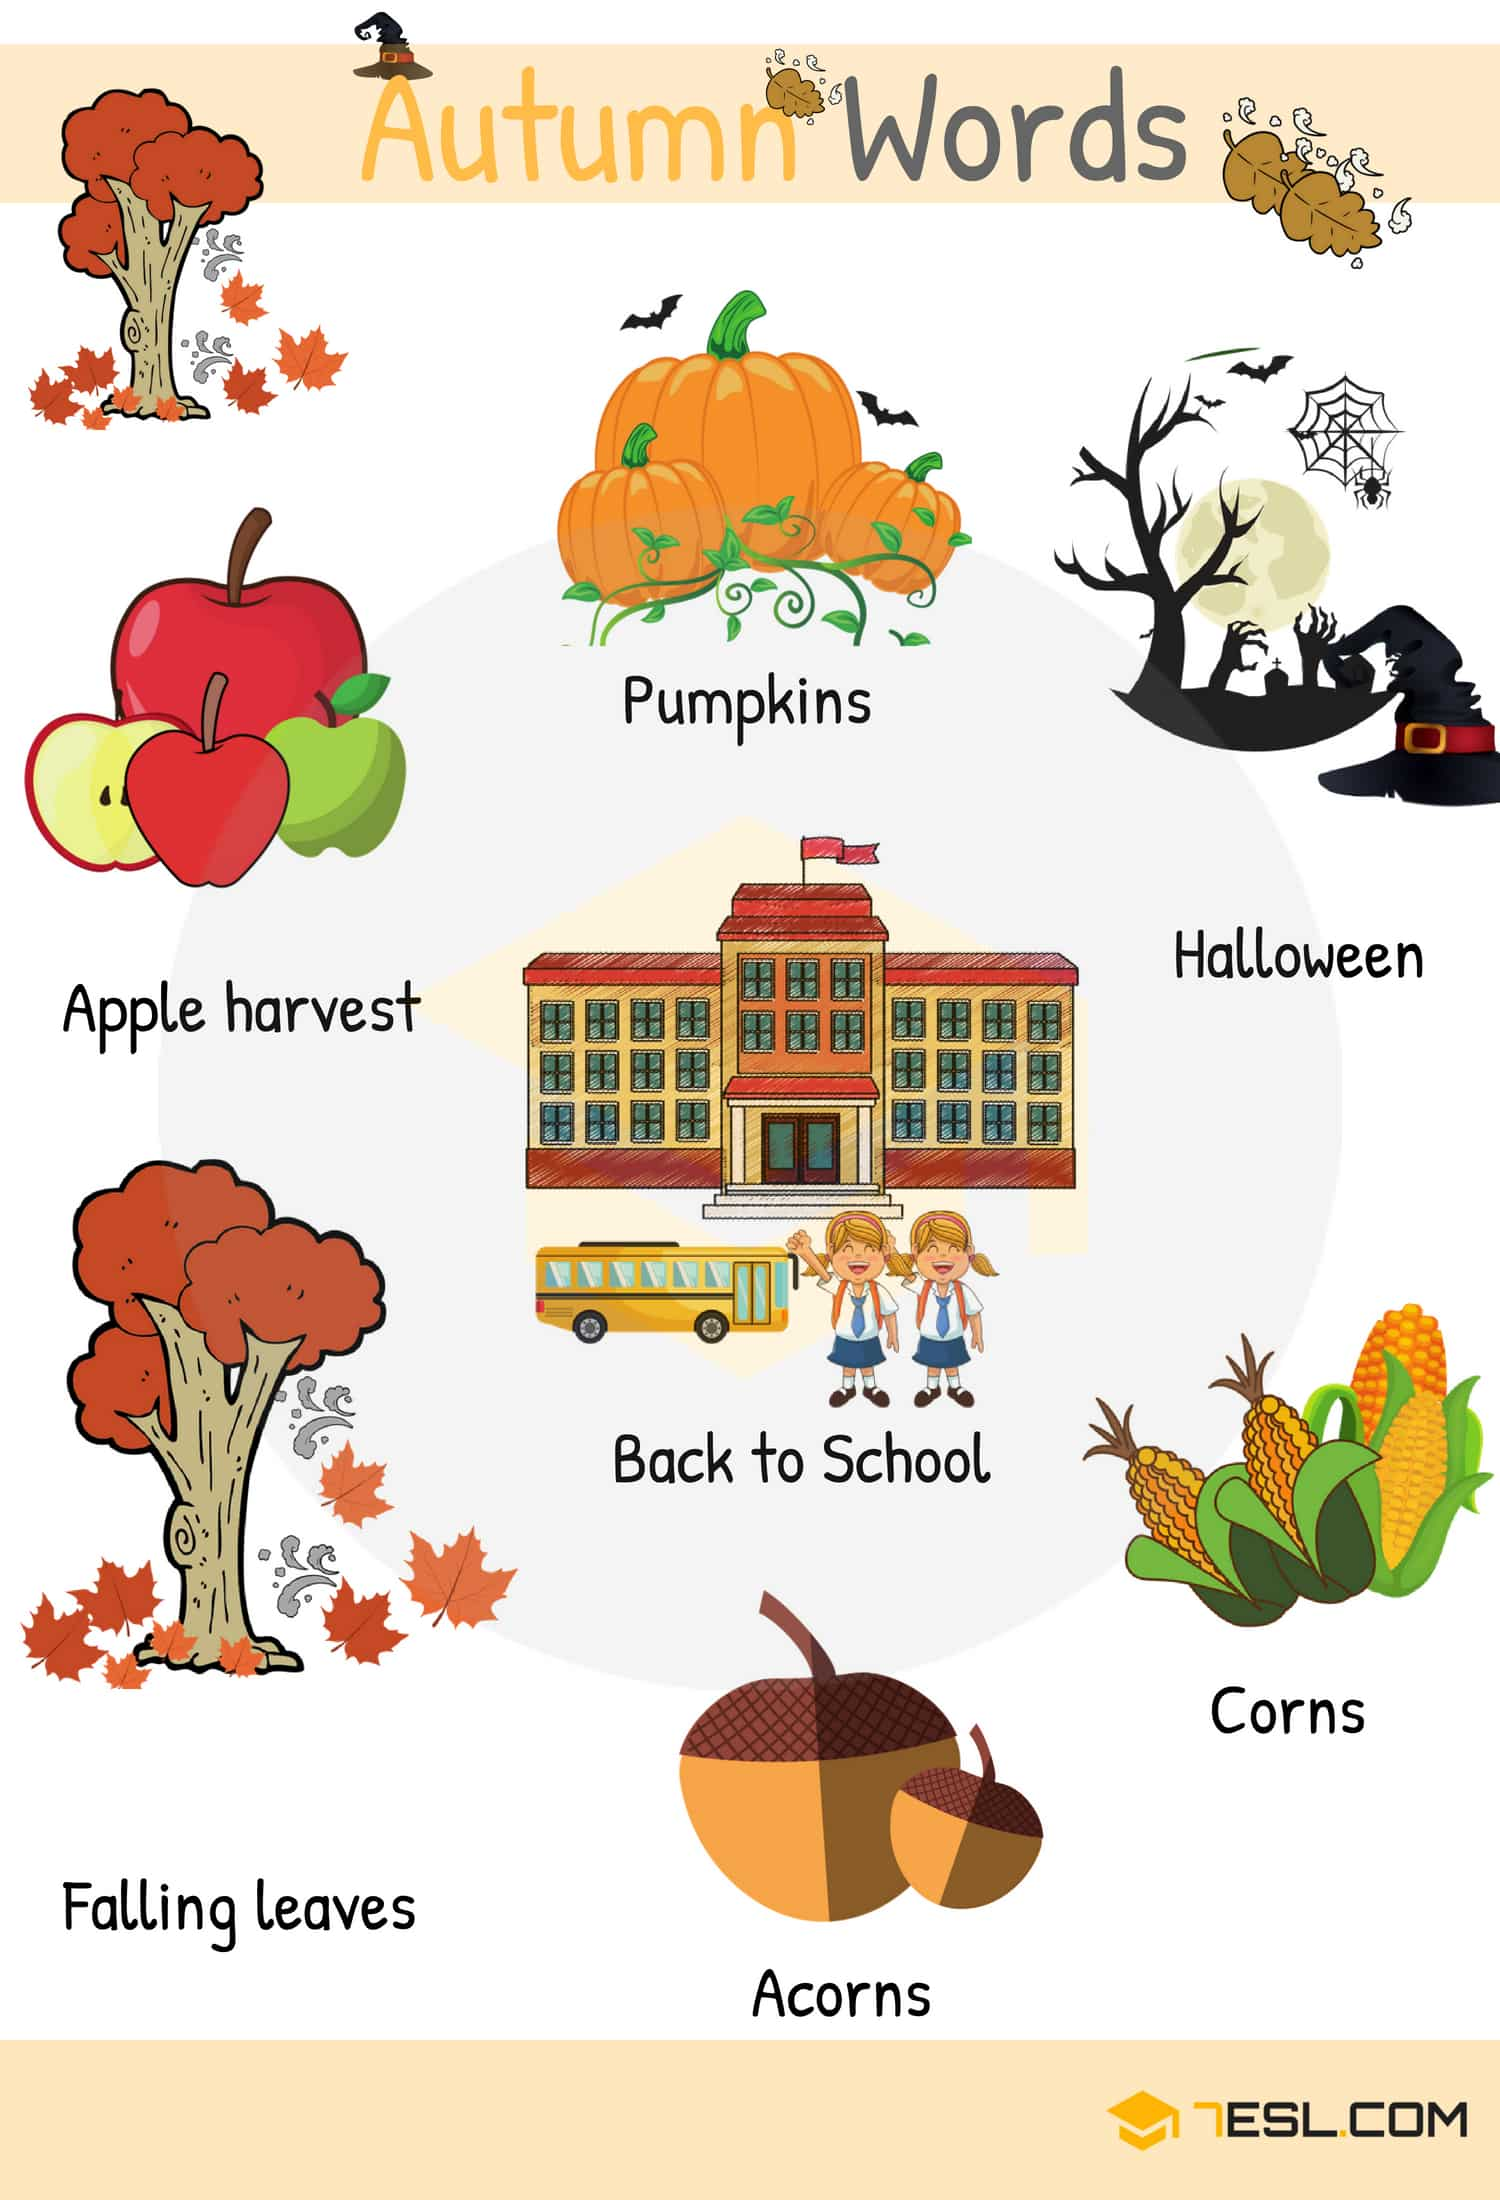 Autumn Words Useful Autumn Vocabulary With Pictures 7esl